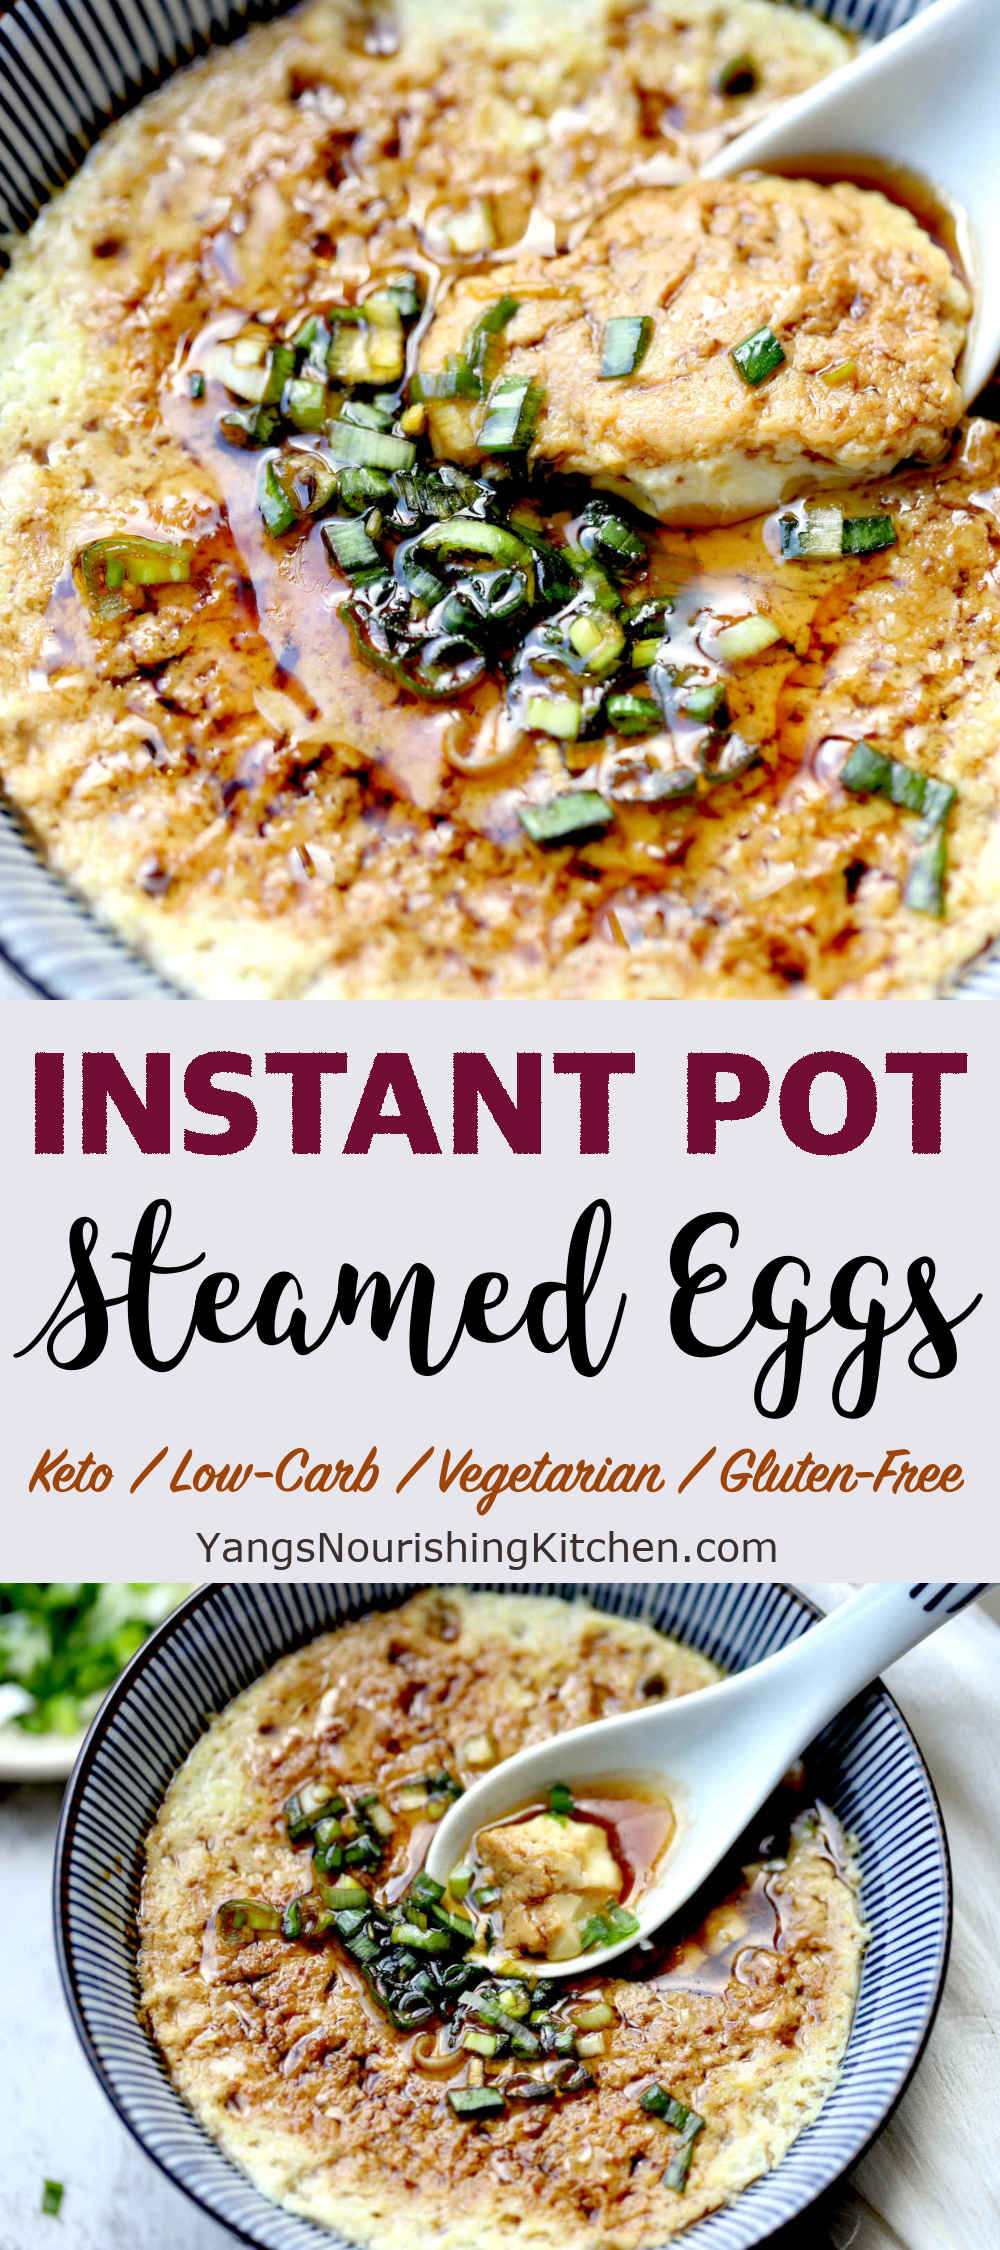 Chinese Steamed Egg Custard in Instant Pot